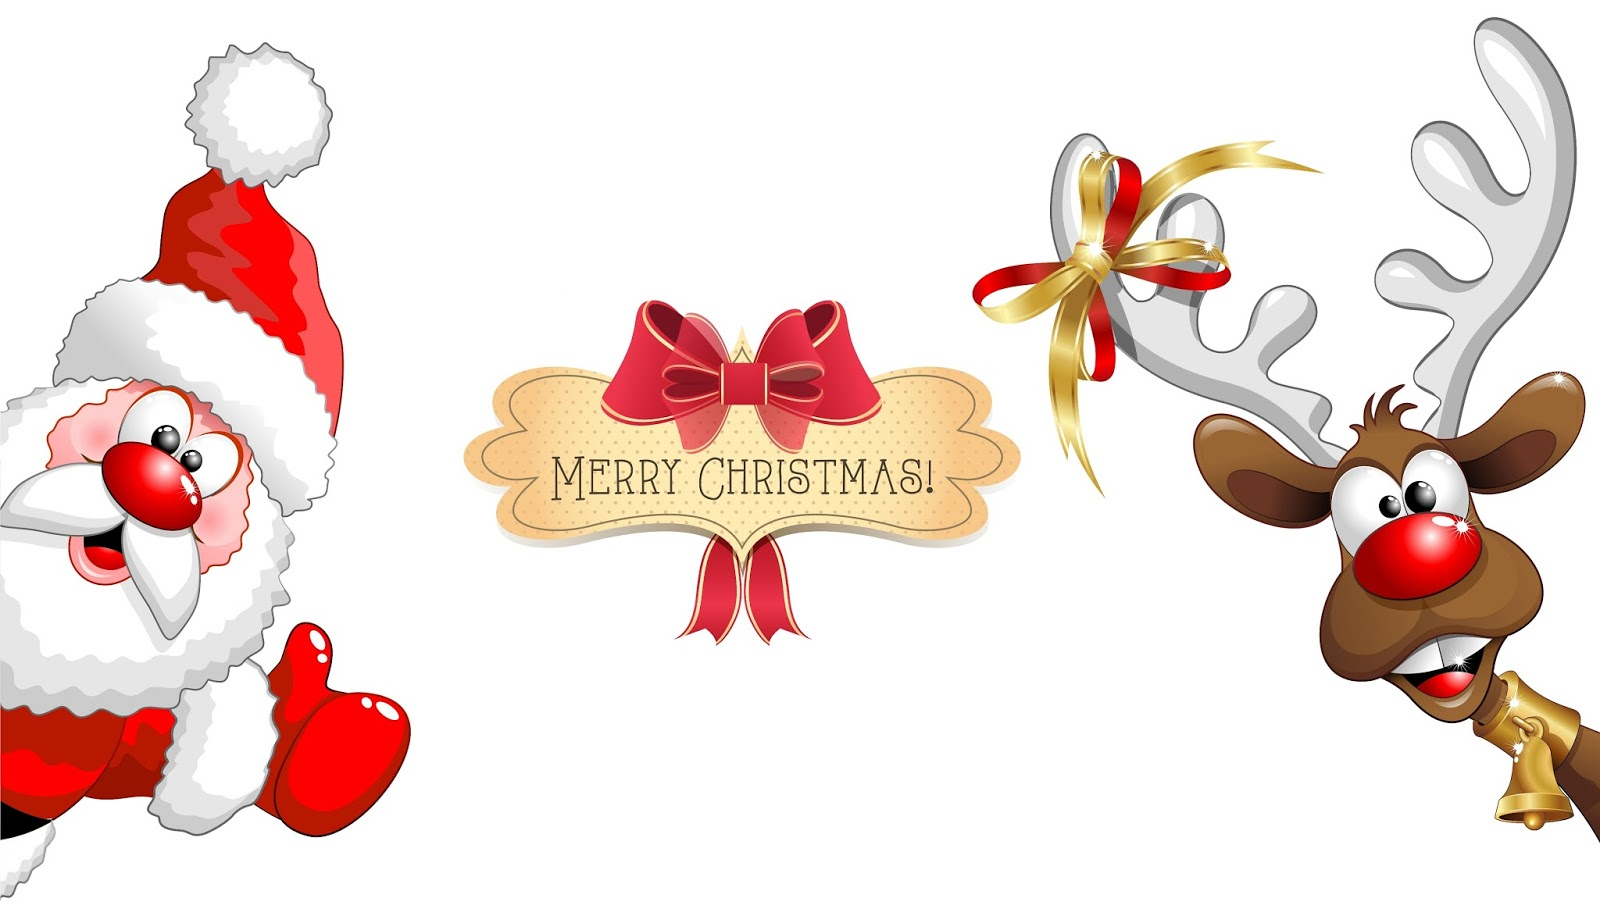 Santa And Reindeer From North Pole Wishing Happy Christmas